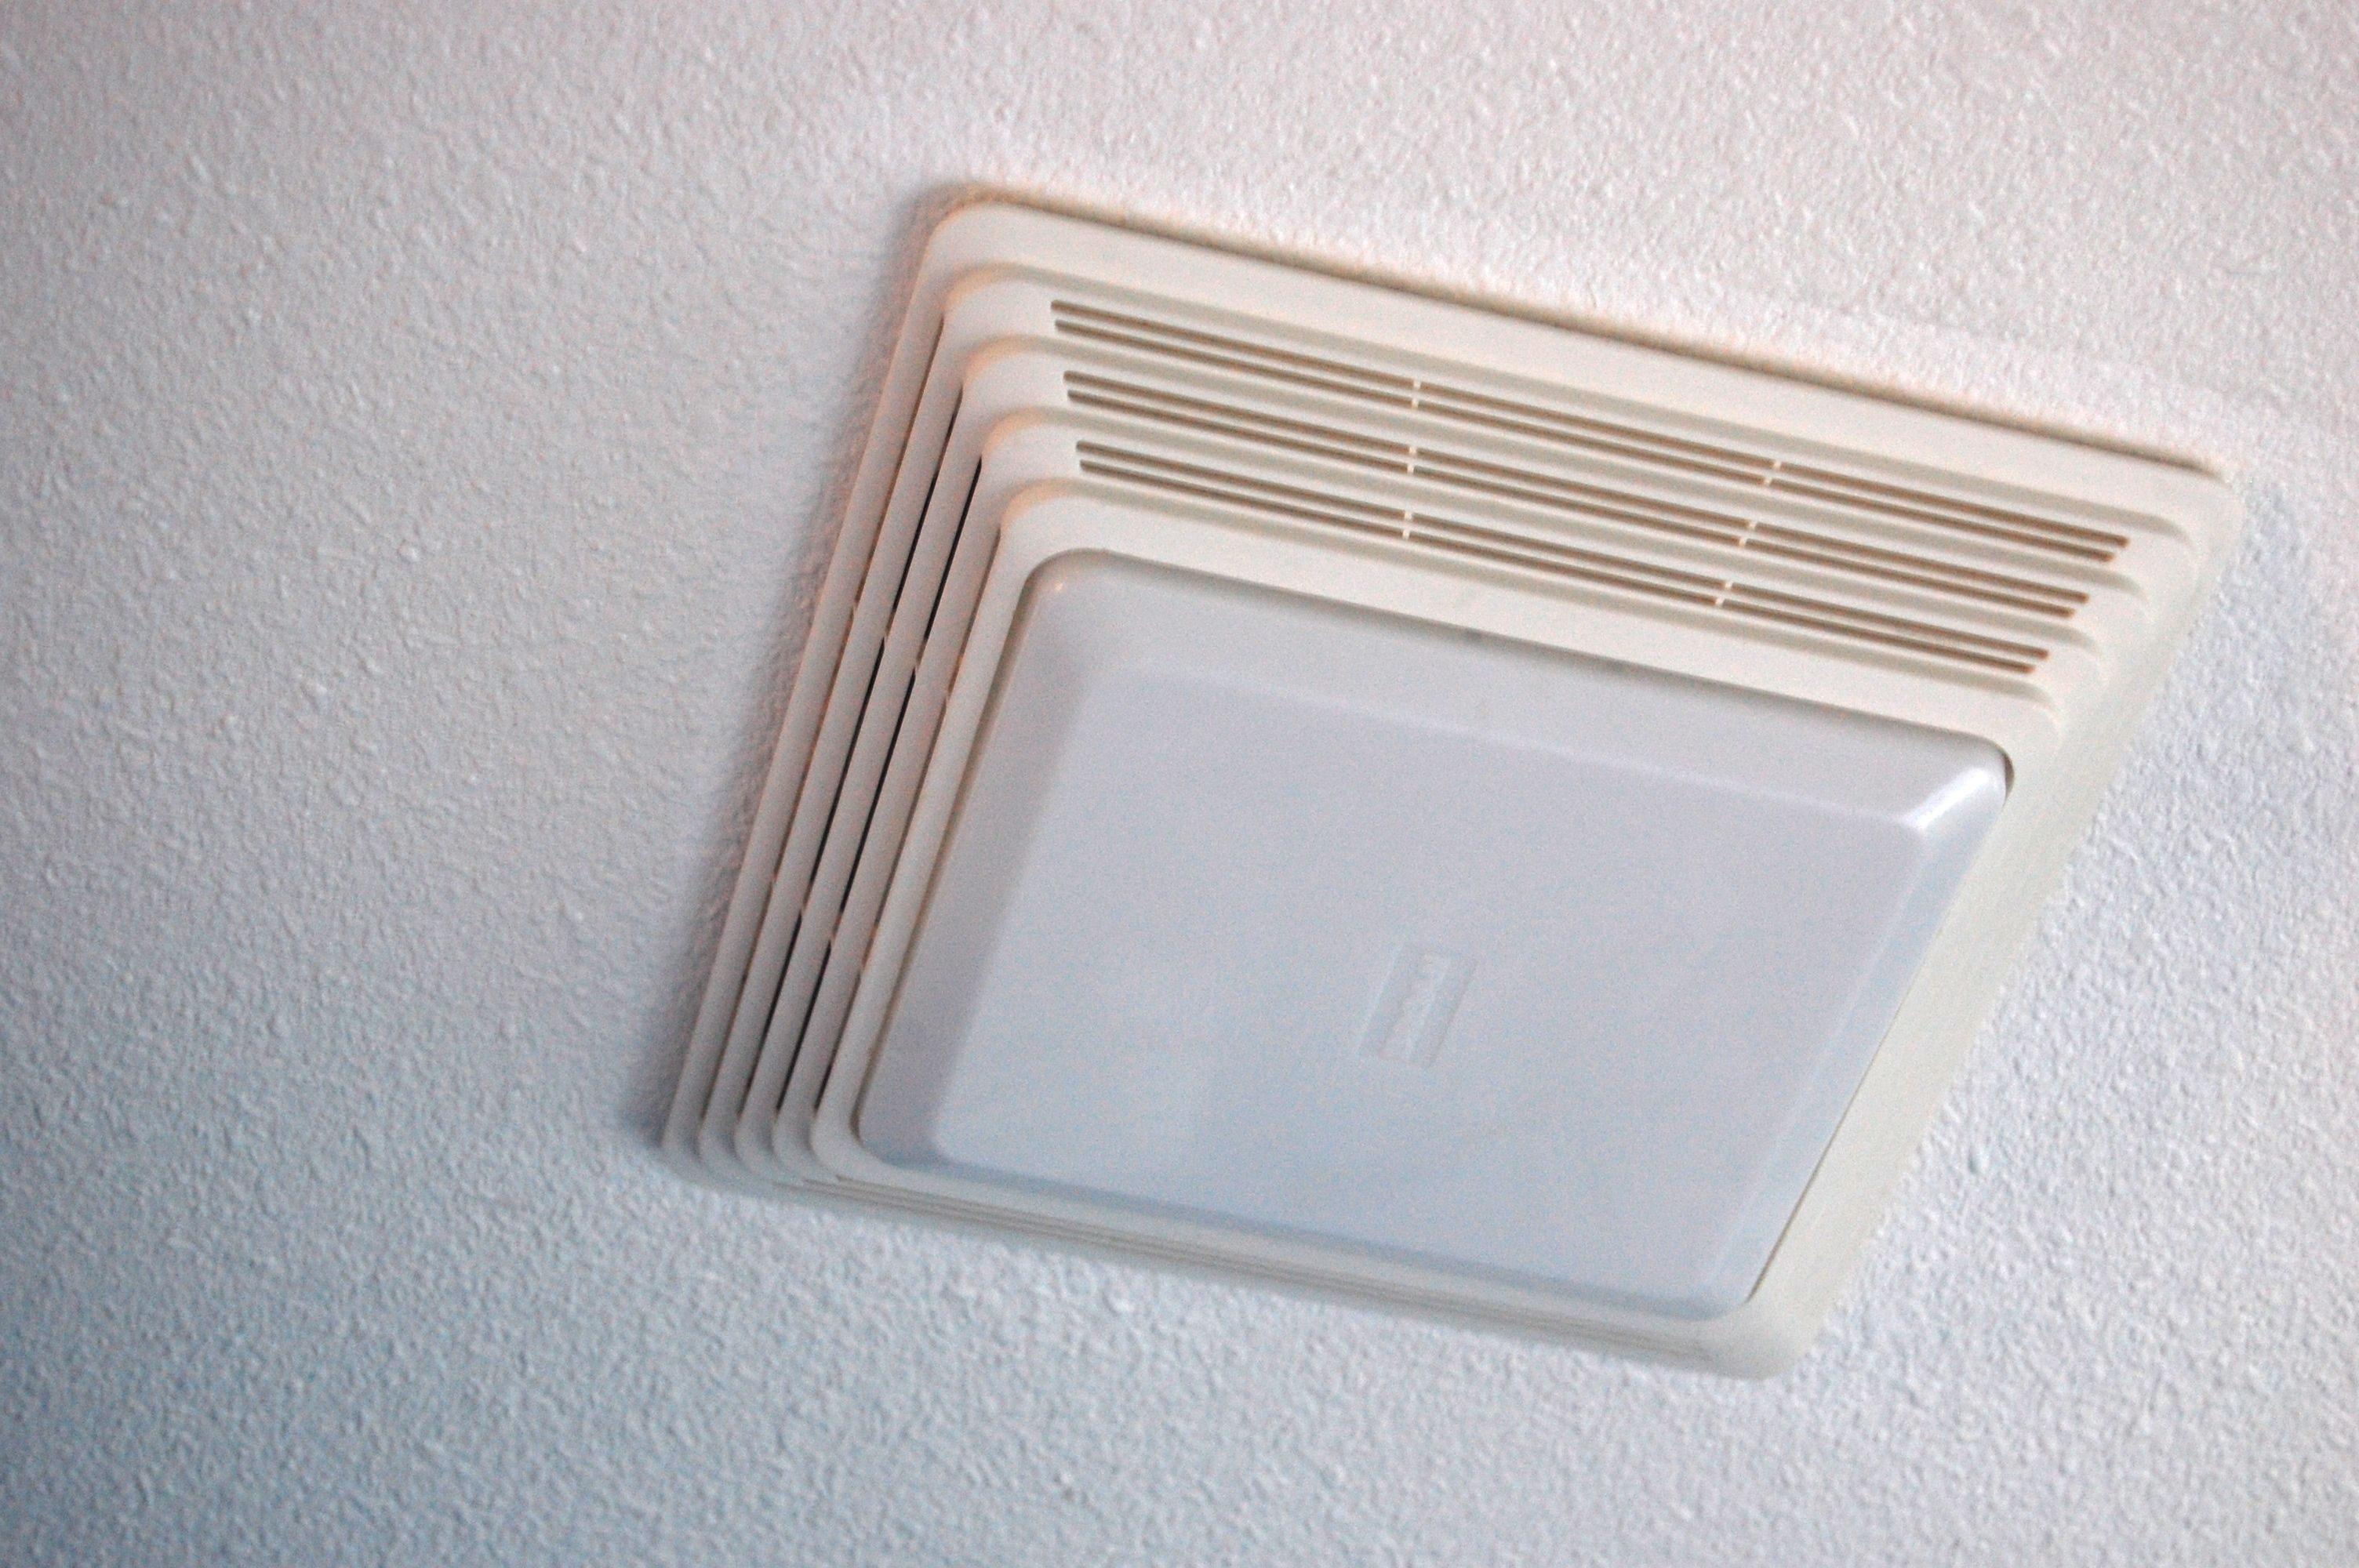 broan bathroom exhaust fan cover toilet exhaust fan fixtures are equally as important as several other features in that ba - Broan Bathroom Fan Cover